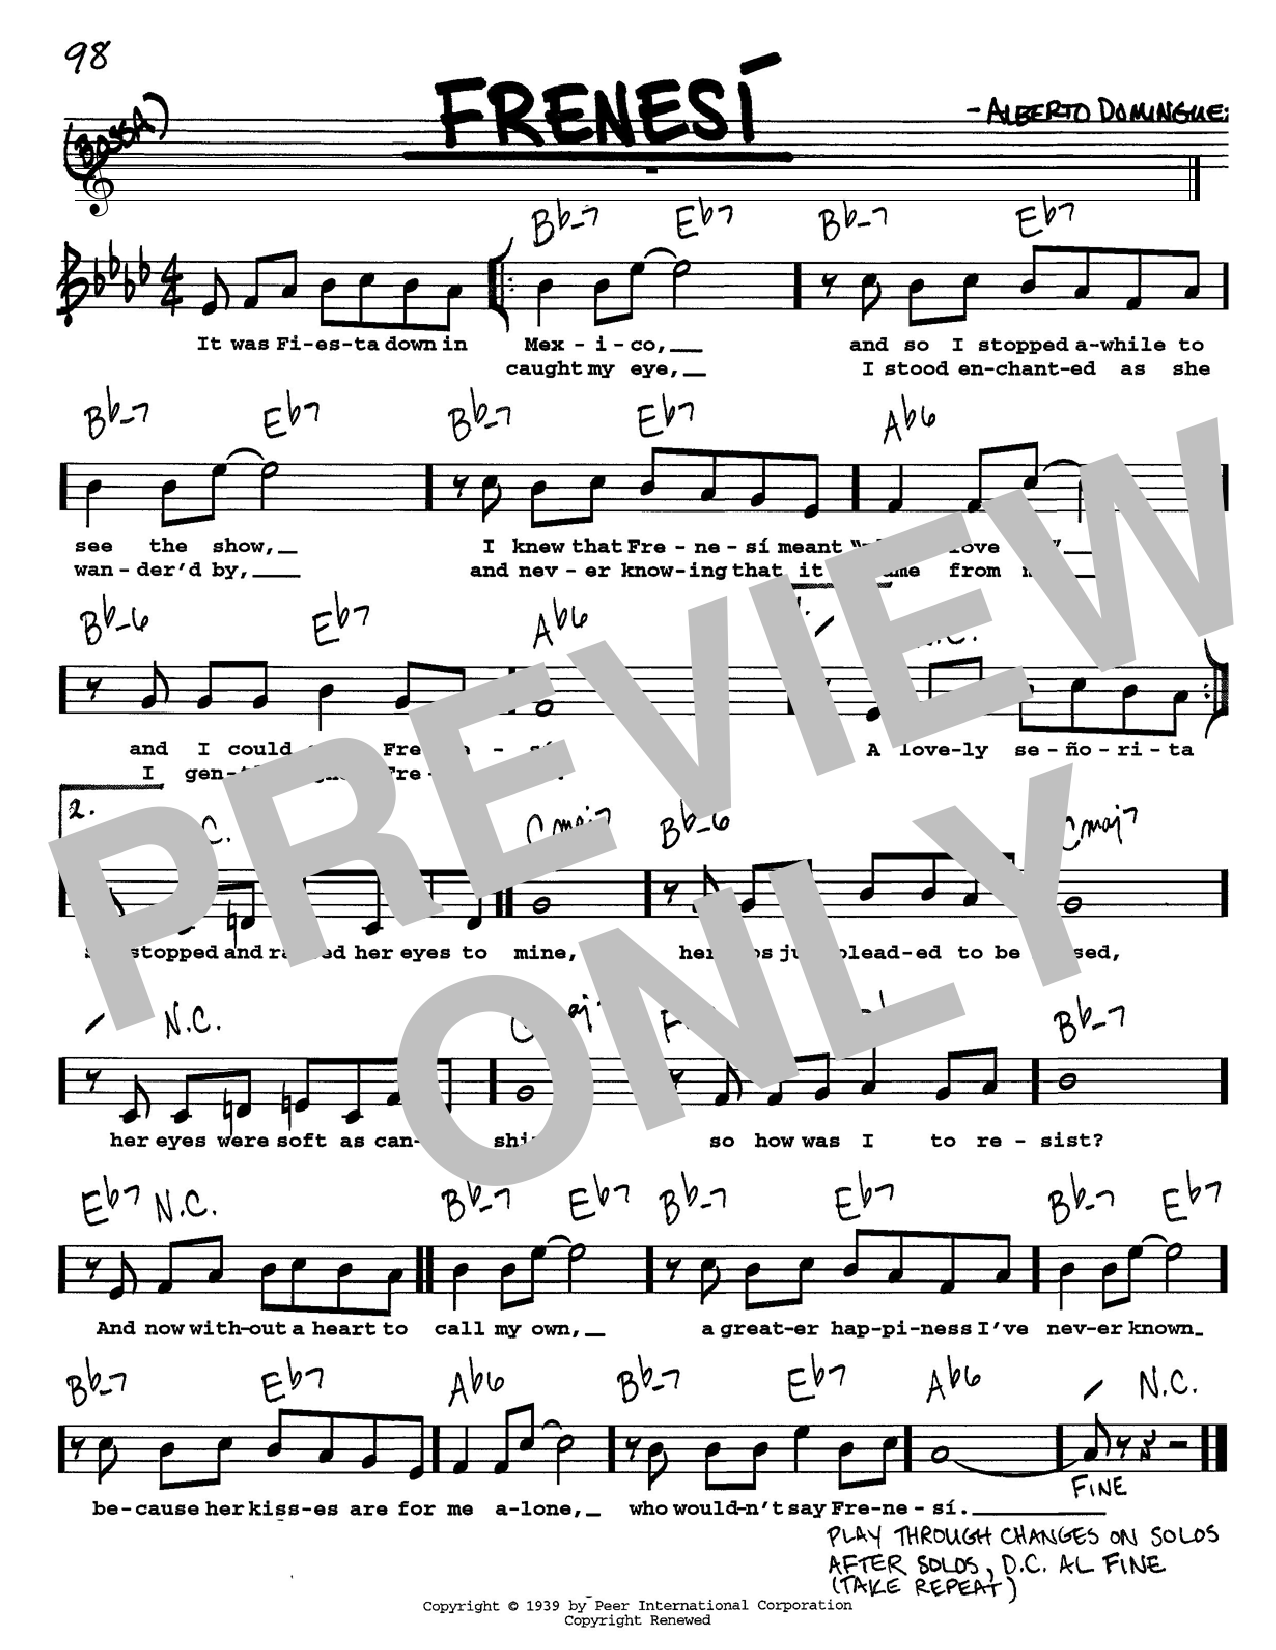 Alberto Dominguez Frenesi sheet music preview music notes and score for Piano including 3 page(s)